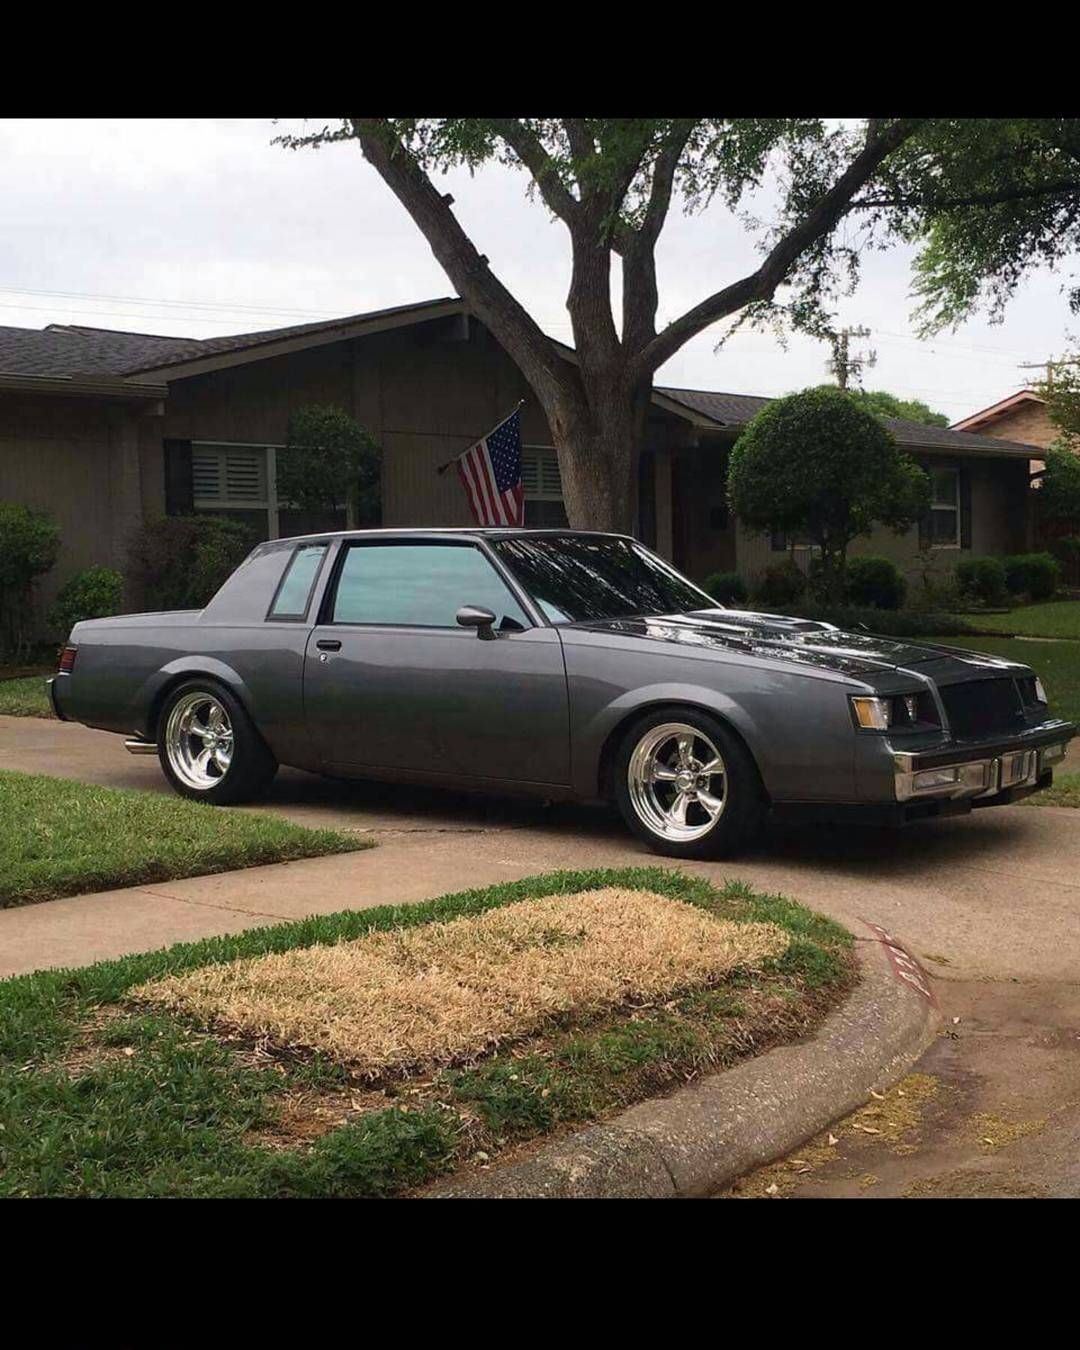 Buick Regal T Type For Sale: Cars I Like